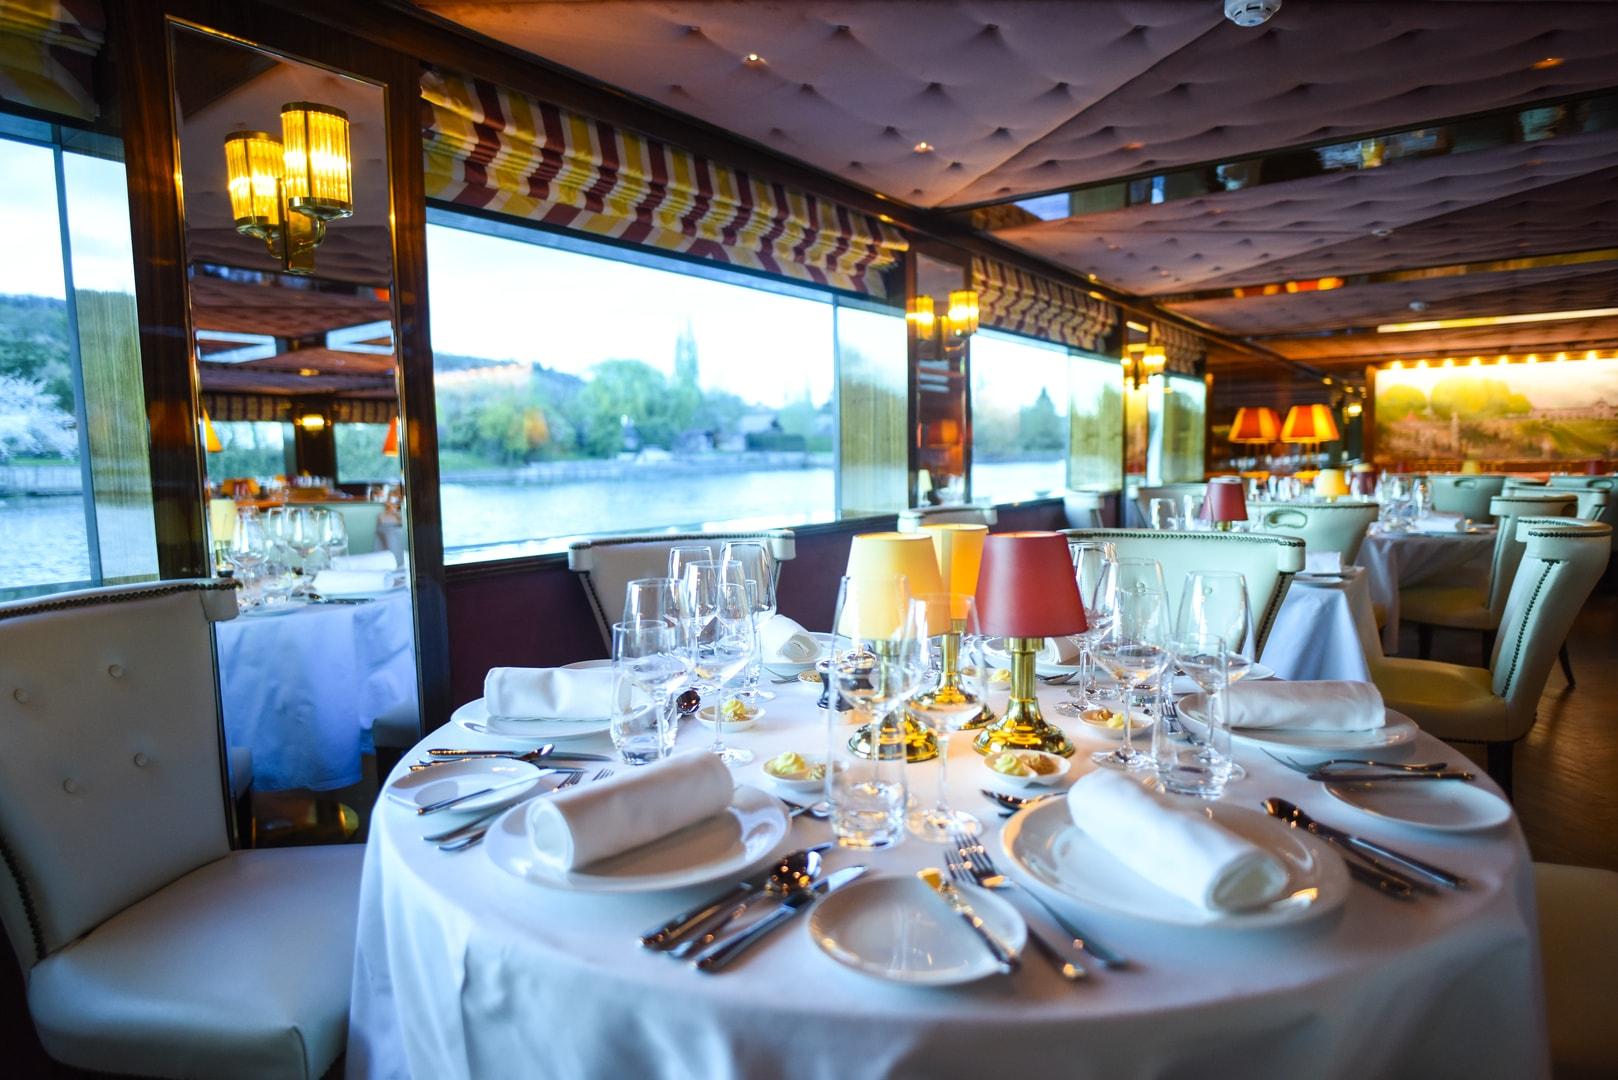 River Cruise ship interior